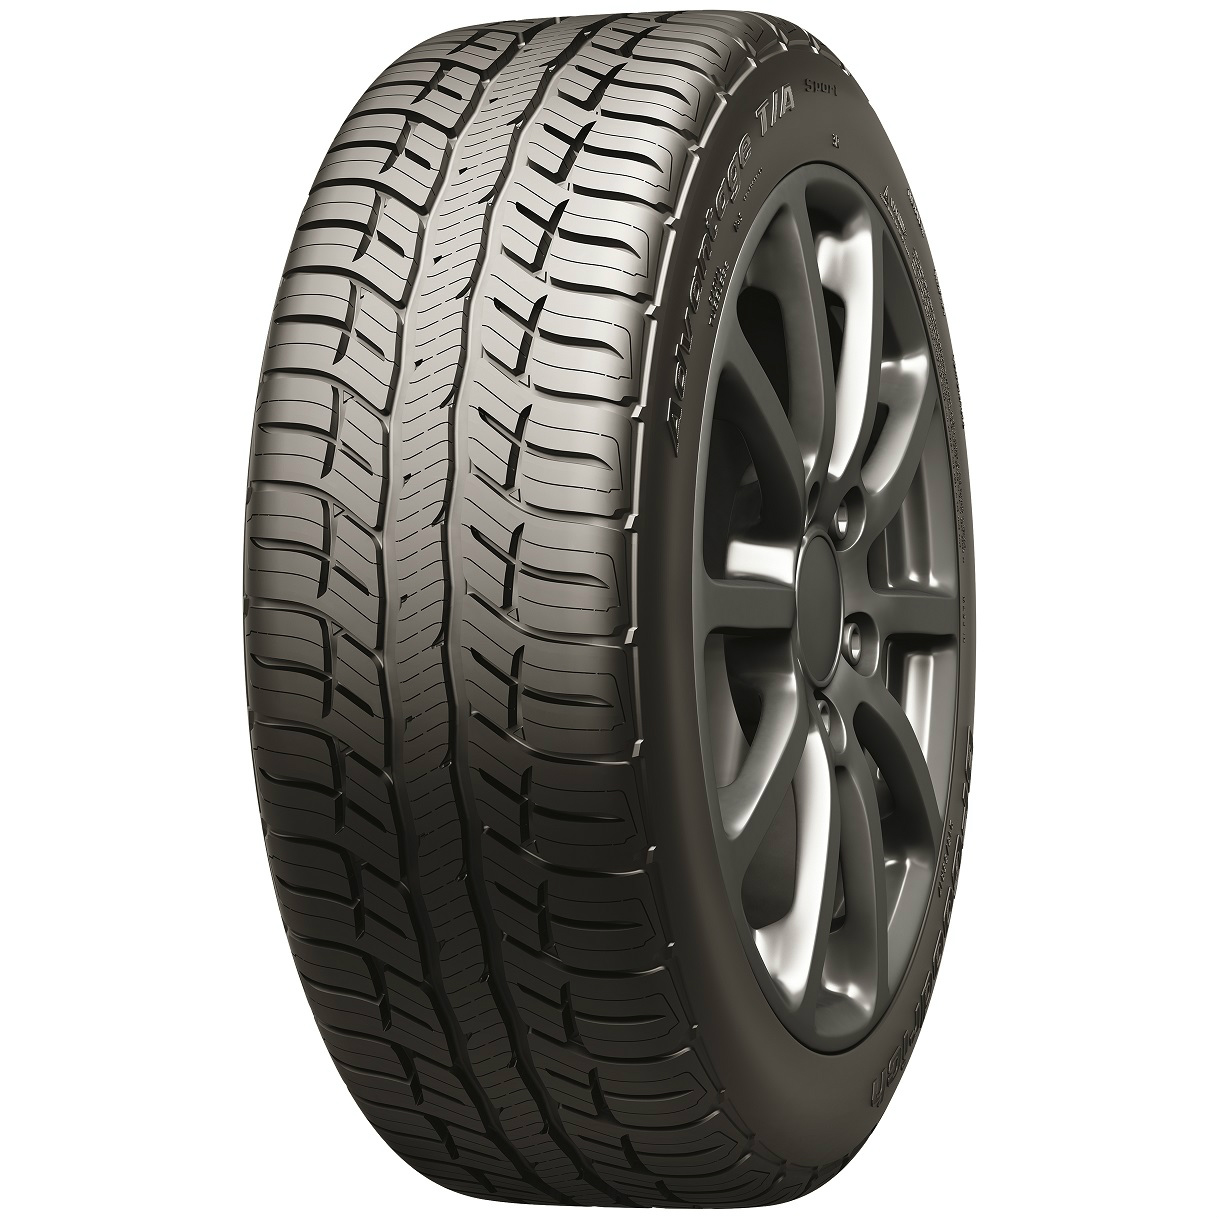 Product Image 1 of 1. Advantage T/A Sport